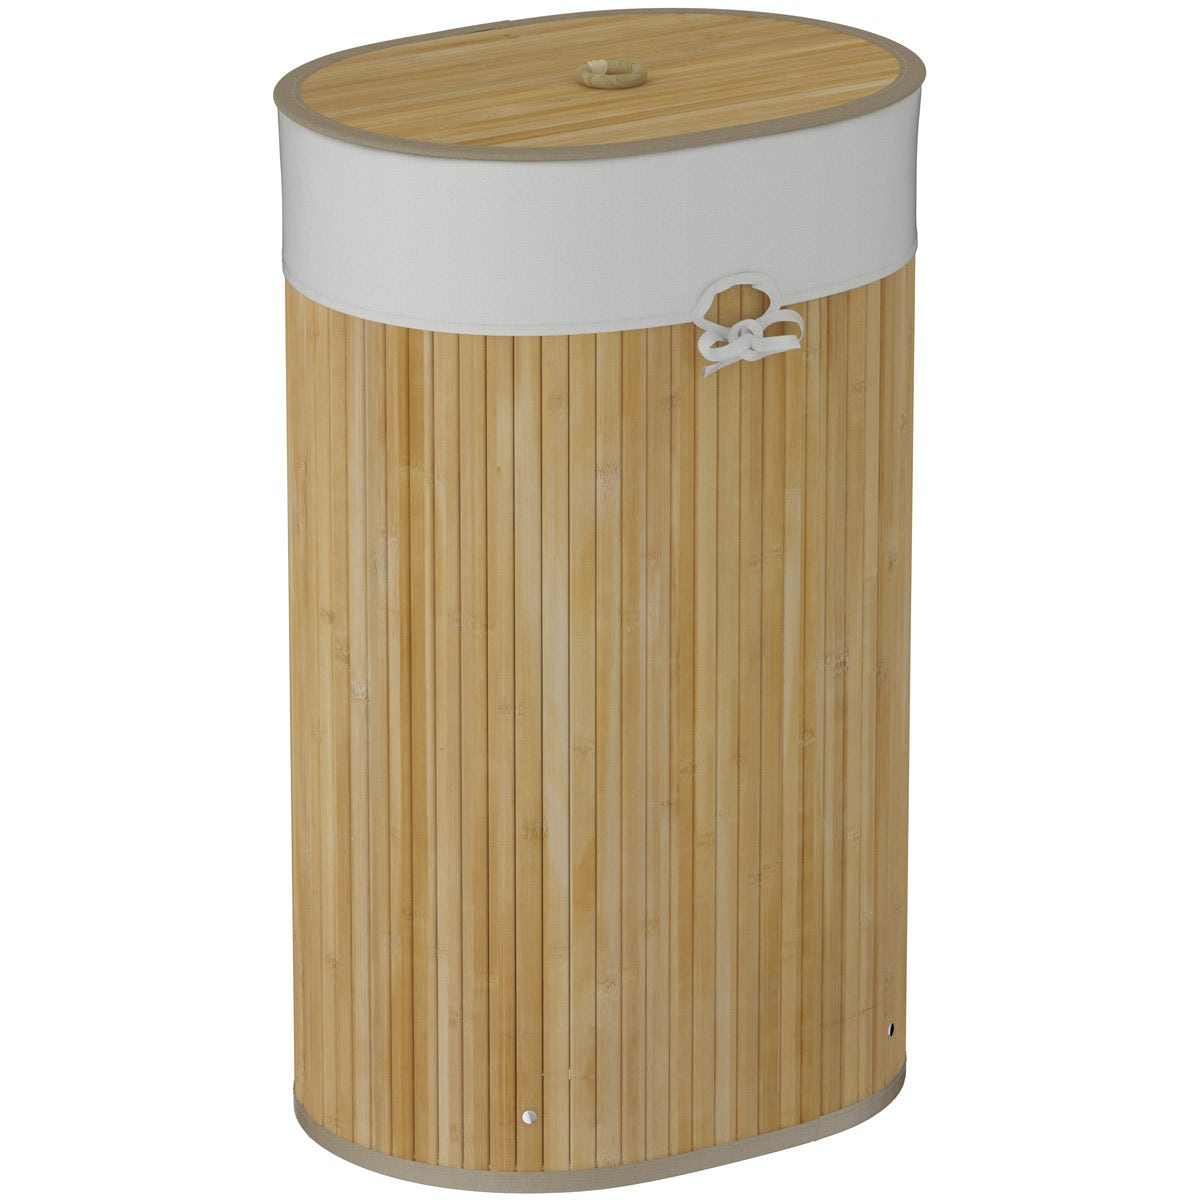 Orchard Natural bamboo oval laundry basket